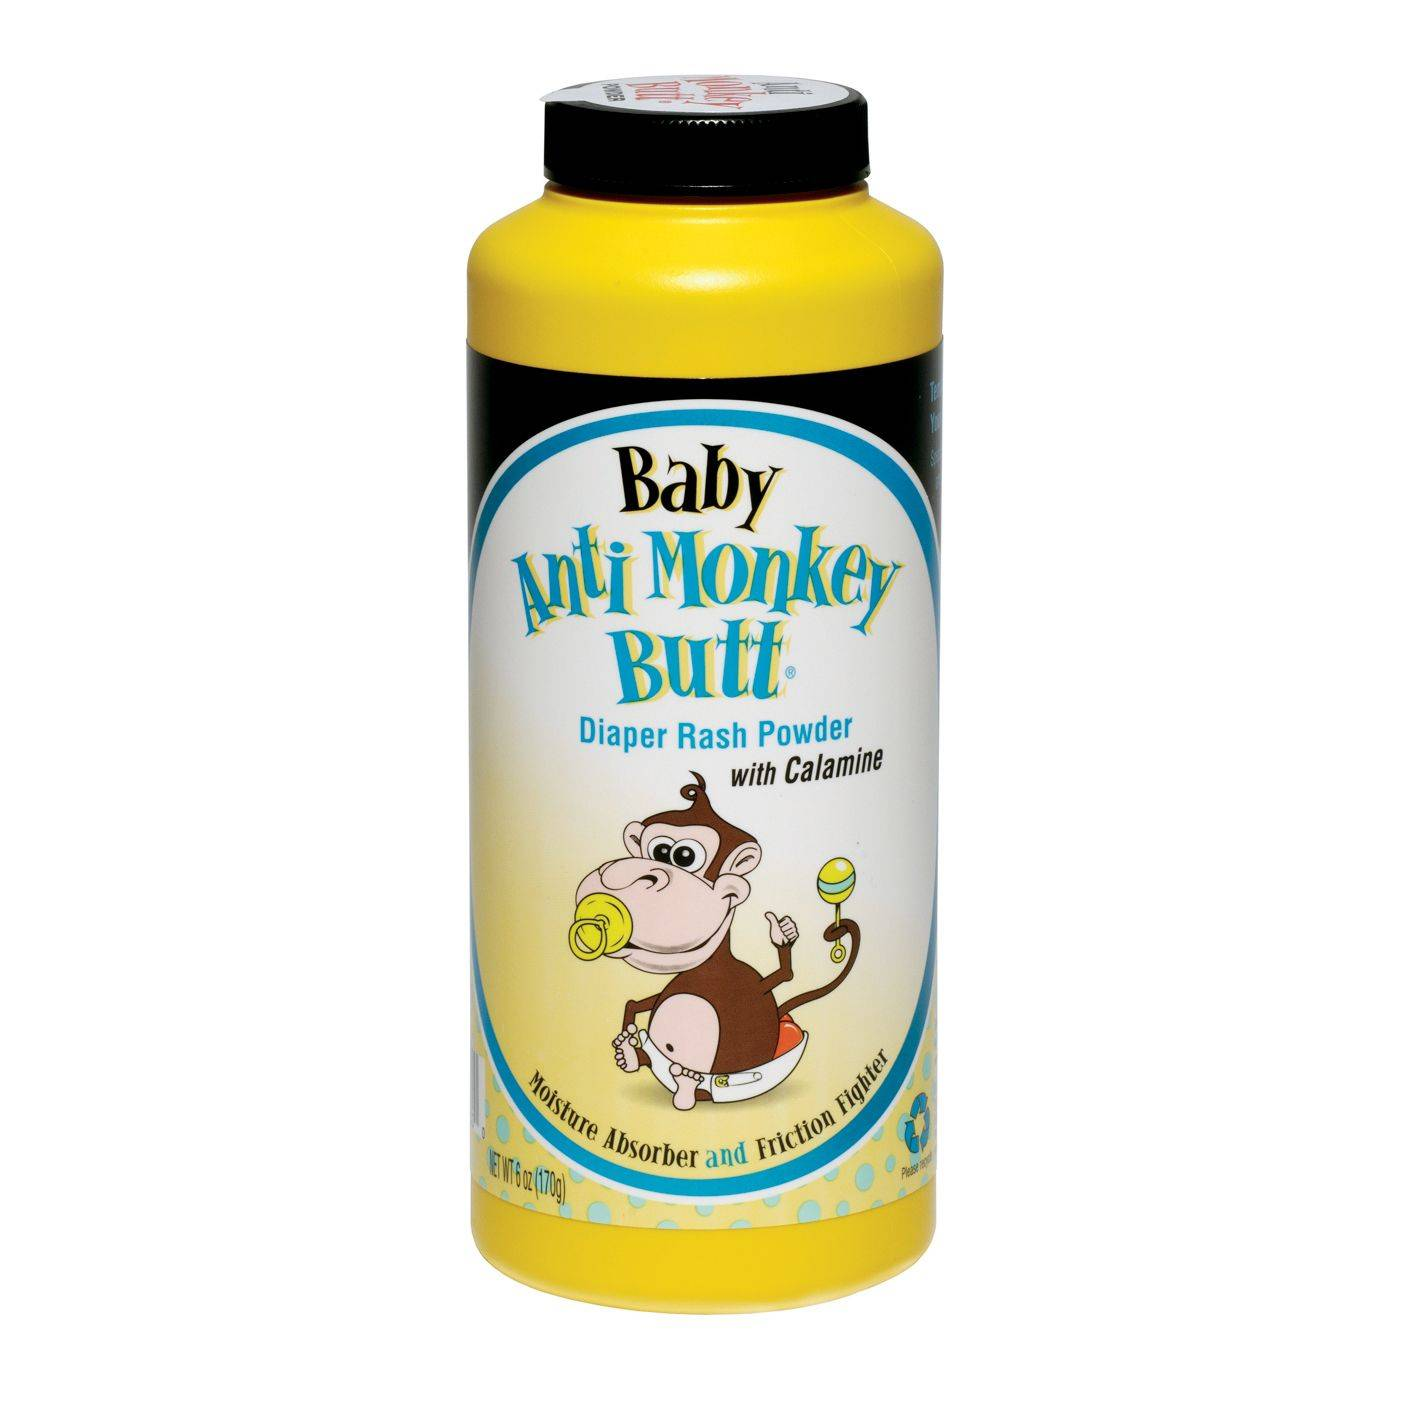 Kelley Baby Anti-Monkey Butt Powder